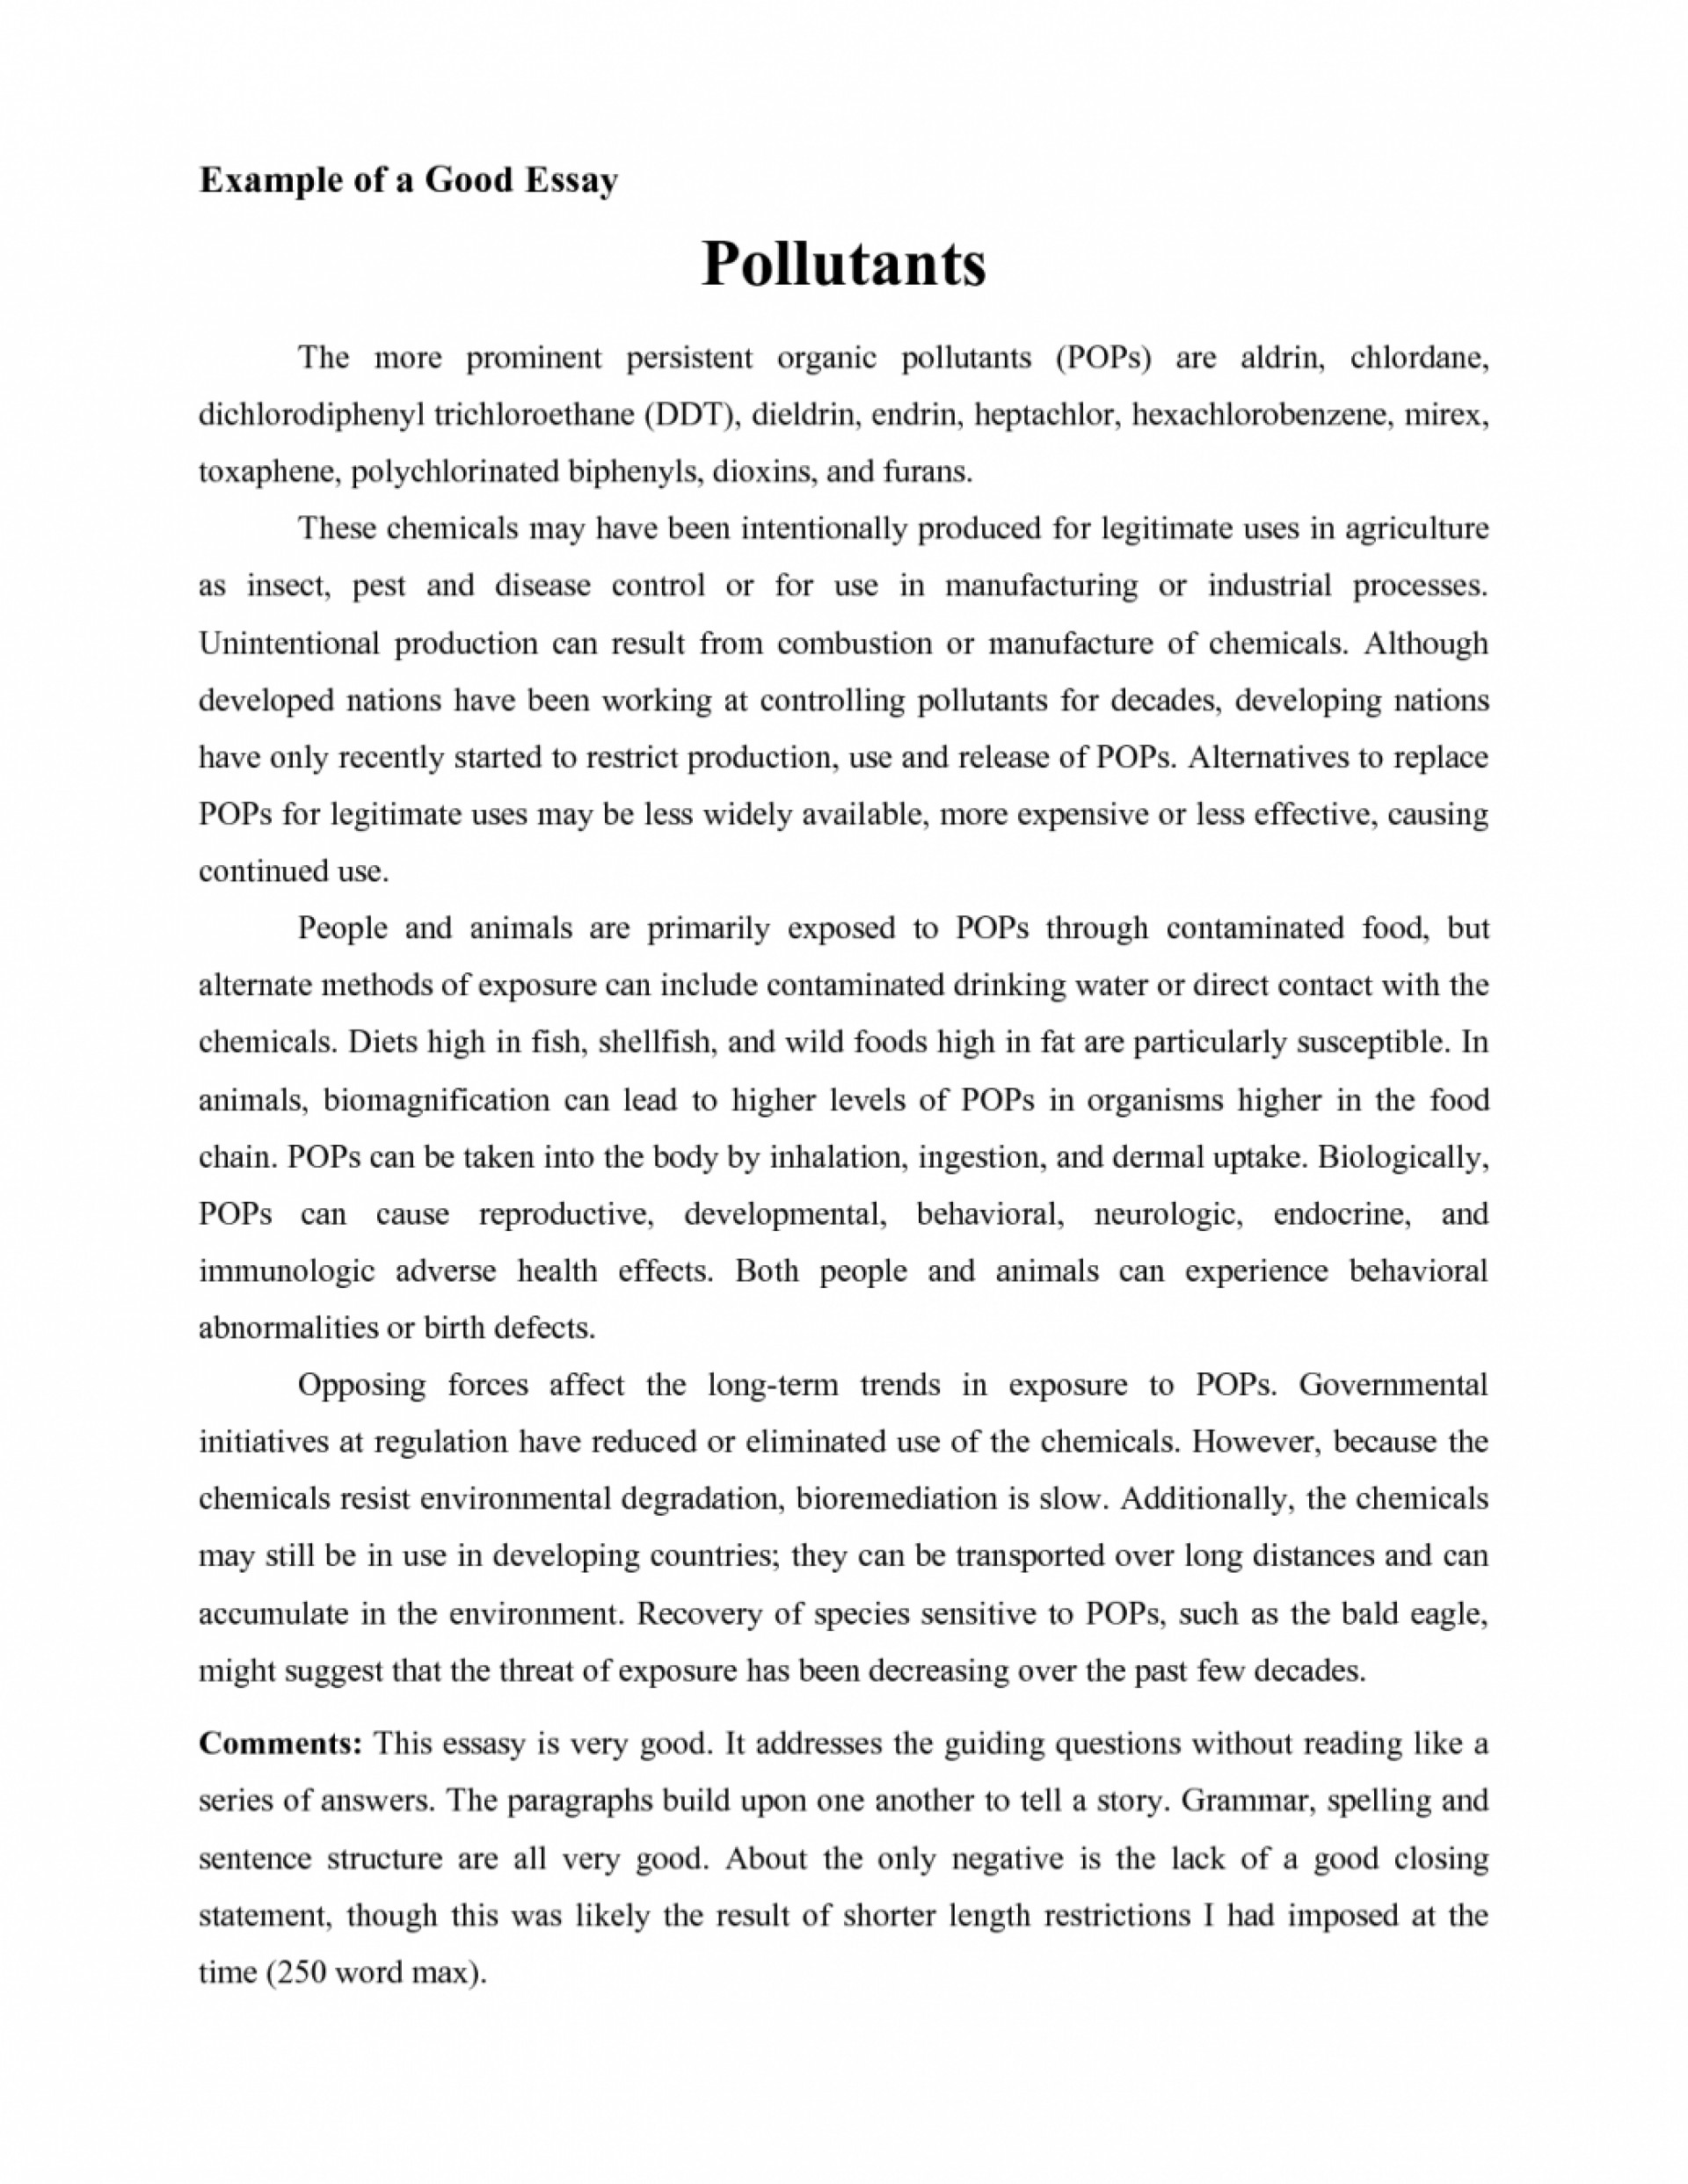 005 Free Sample Argumentative Research Paper Essay High School Good Persuasive Topics For With Citations Example Writing An Argument Letter Template Surprising 1920